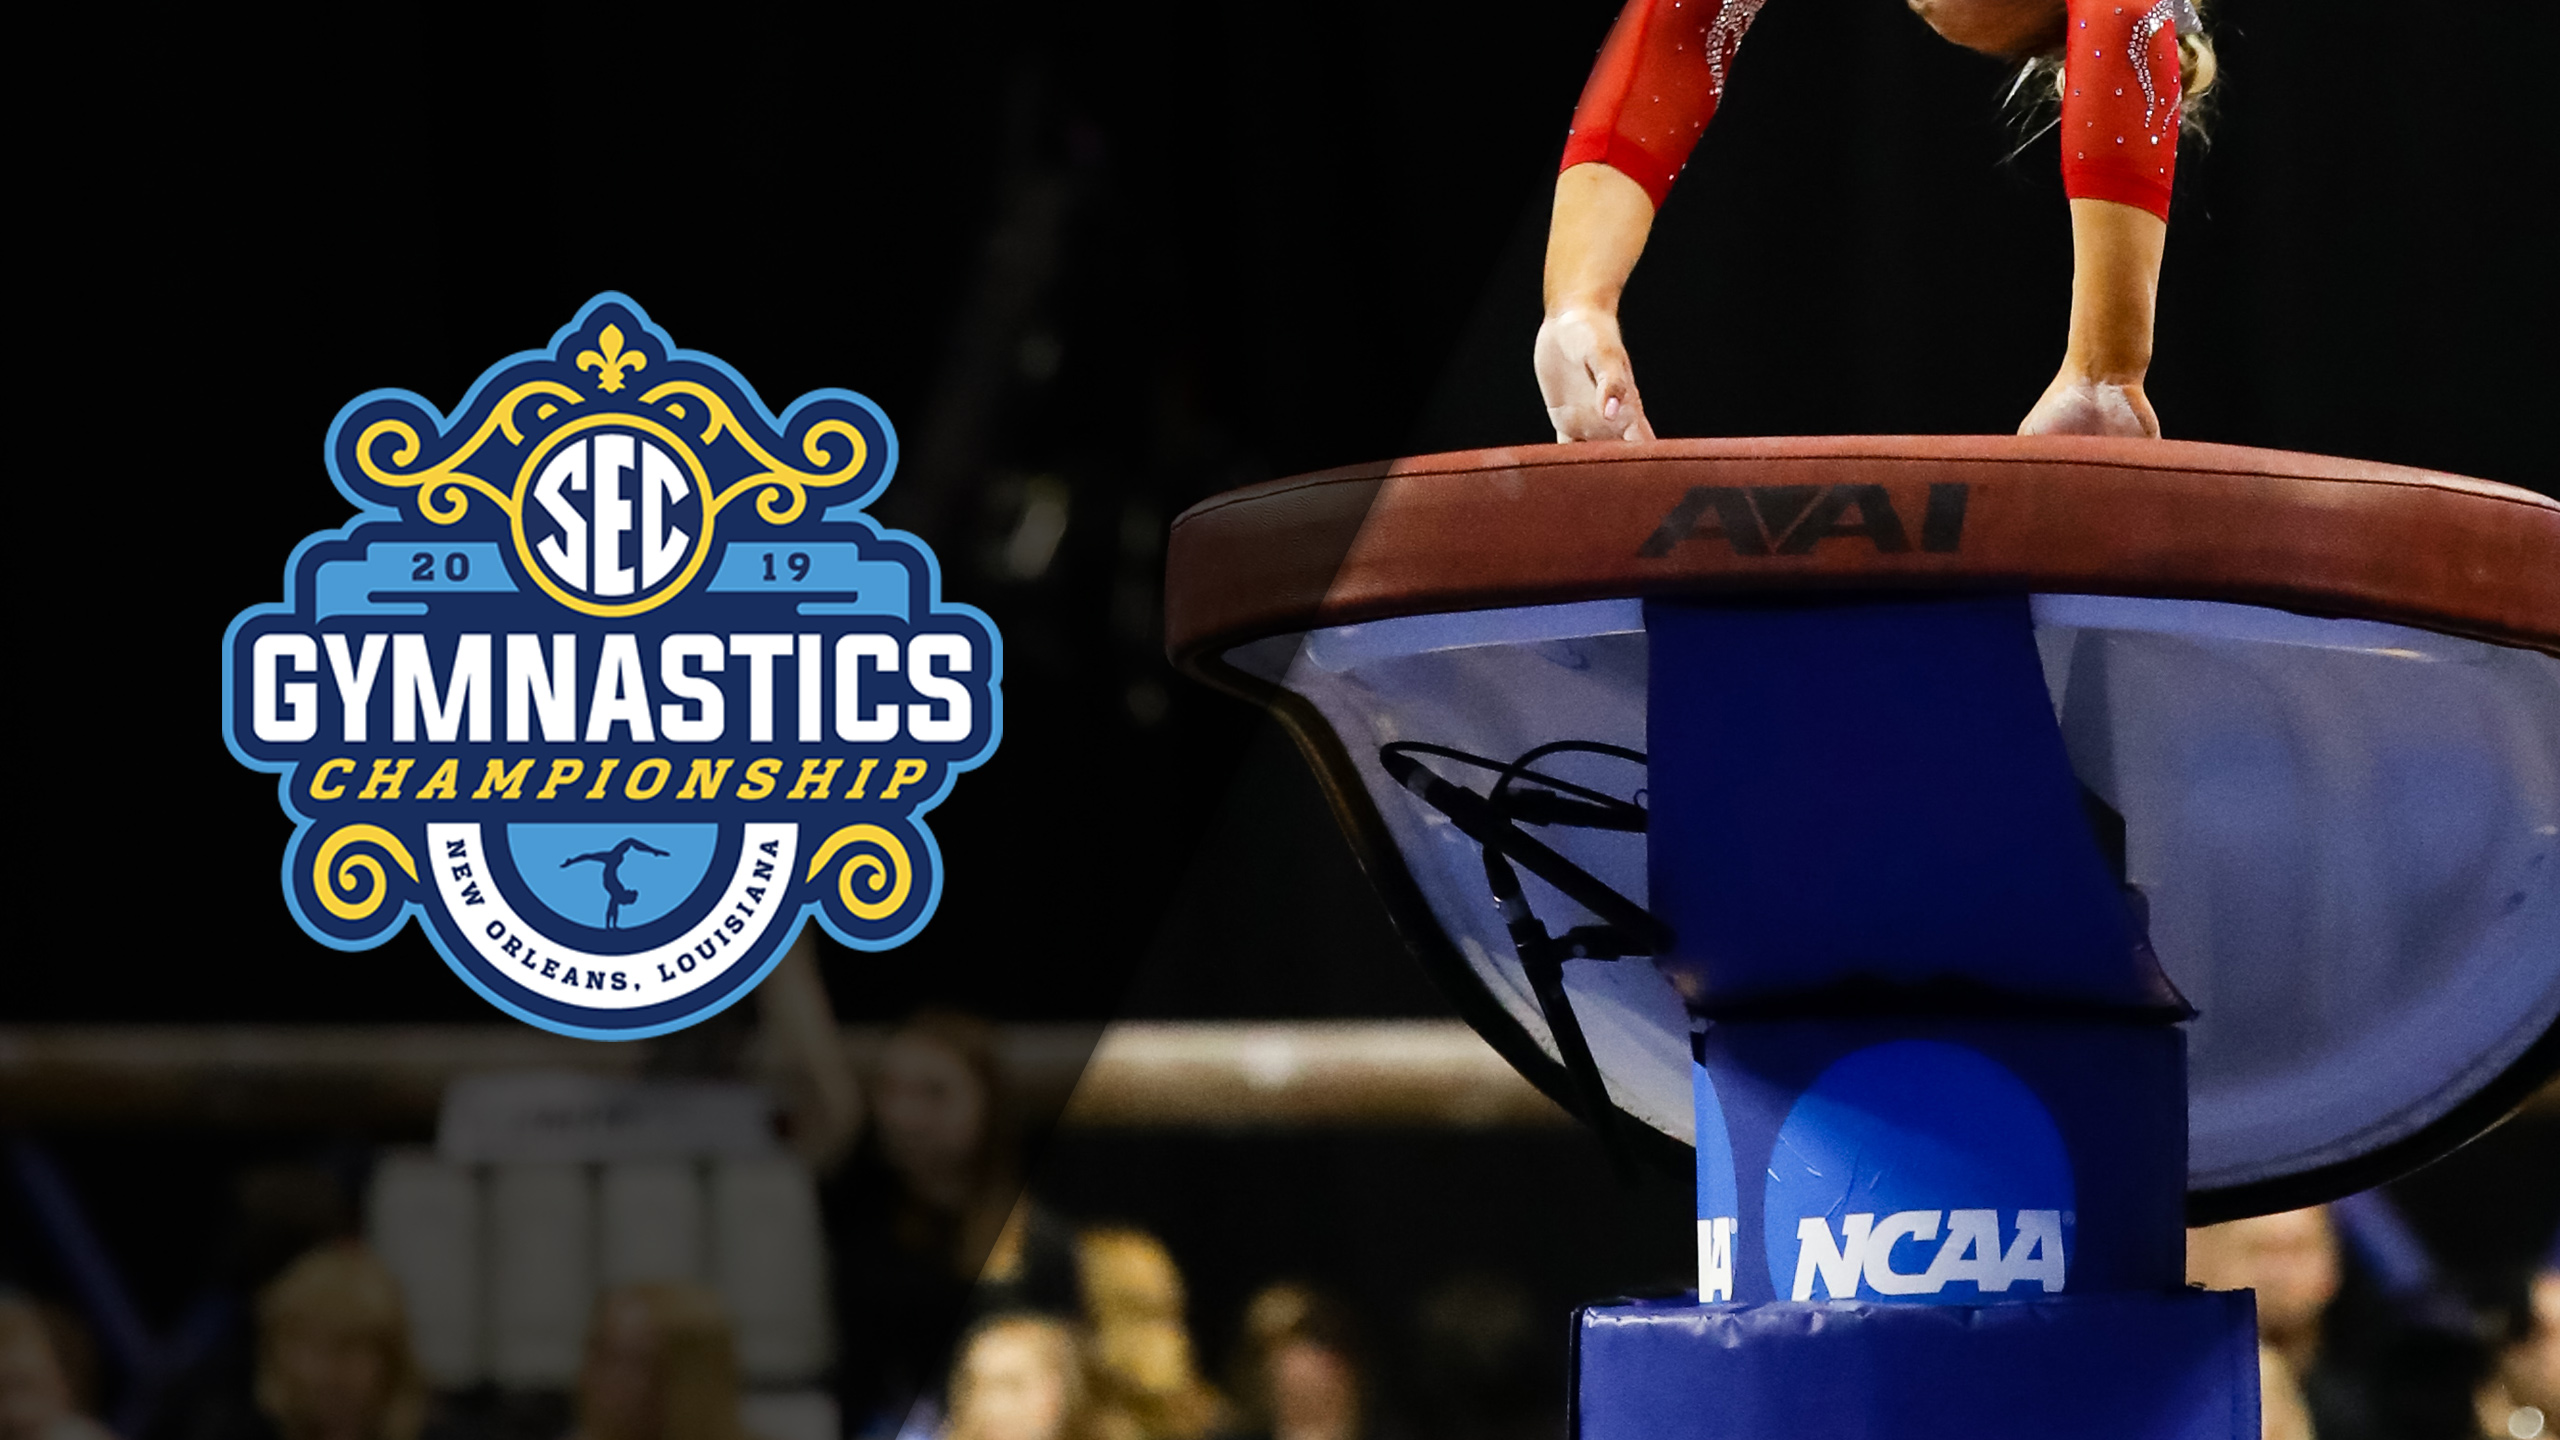 SEC Gymnastics Championship - Vault (Evening Session)